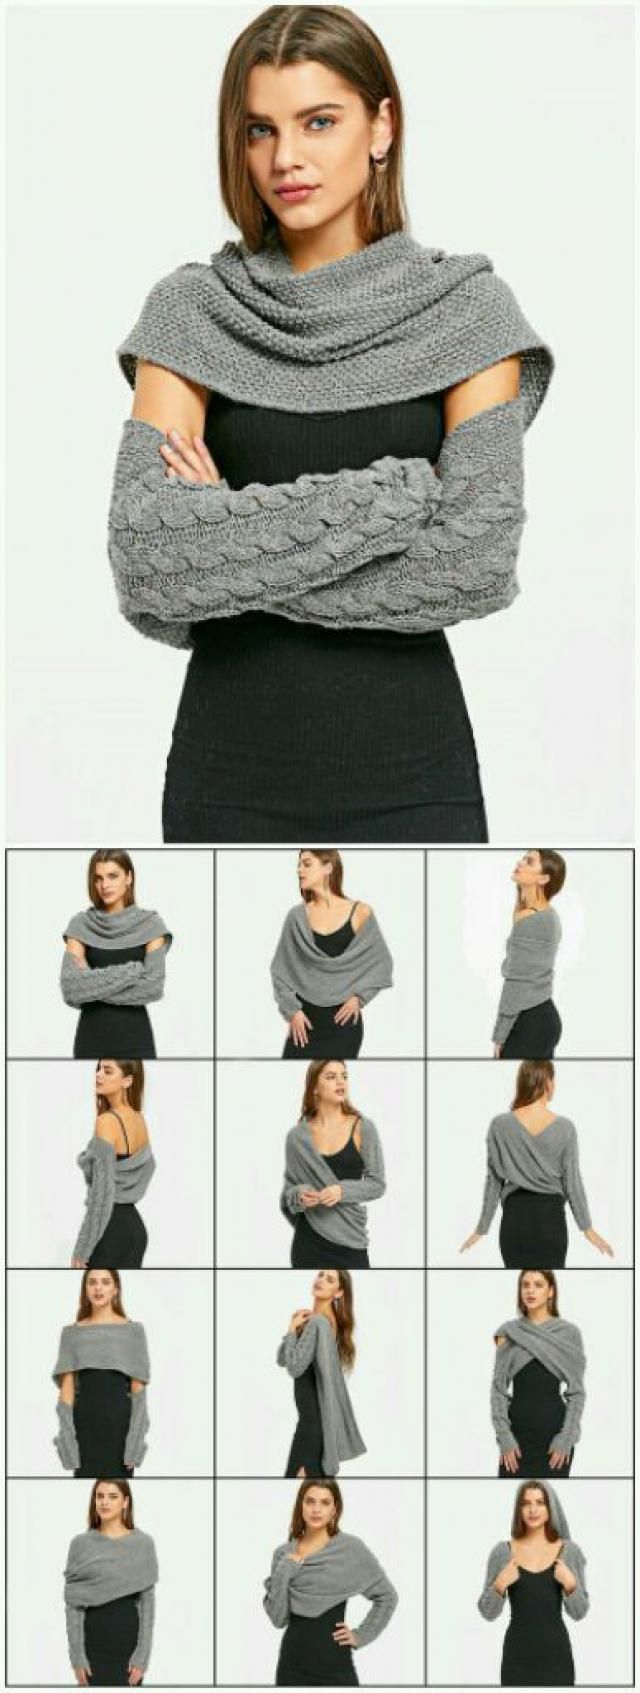 Convertible sweater, so practical. Like it.